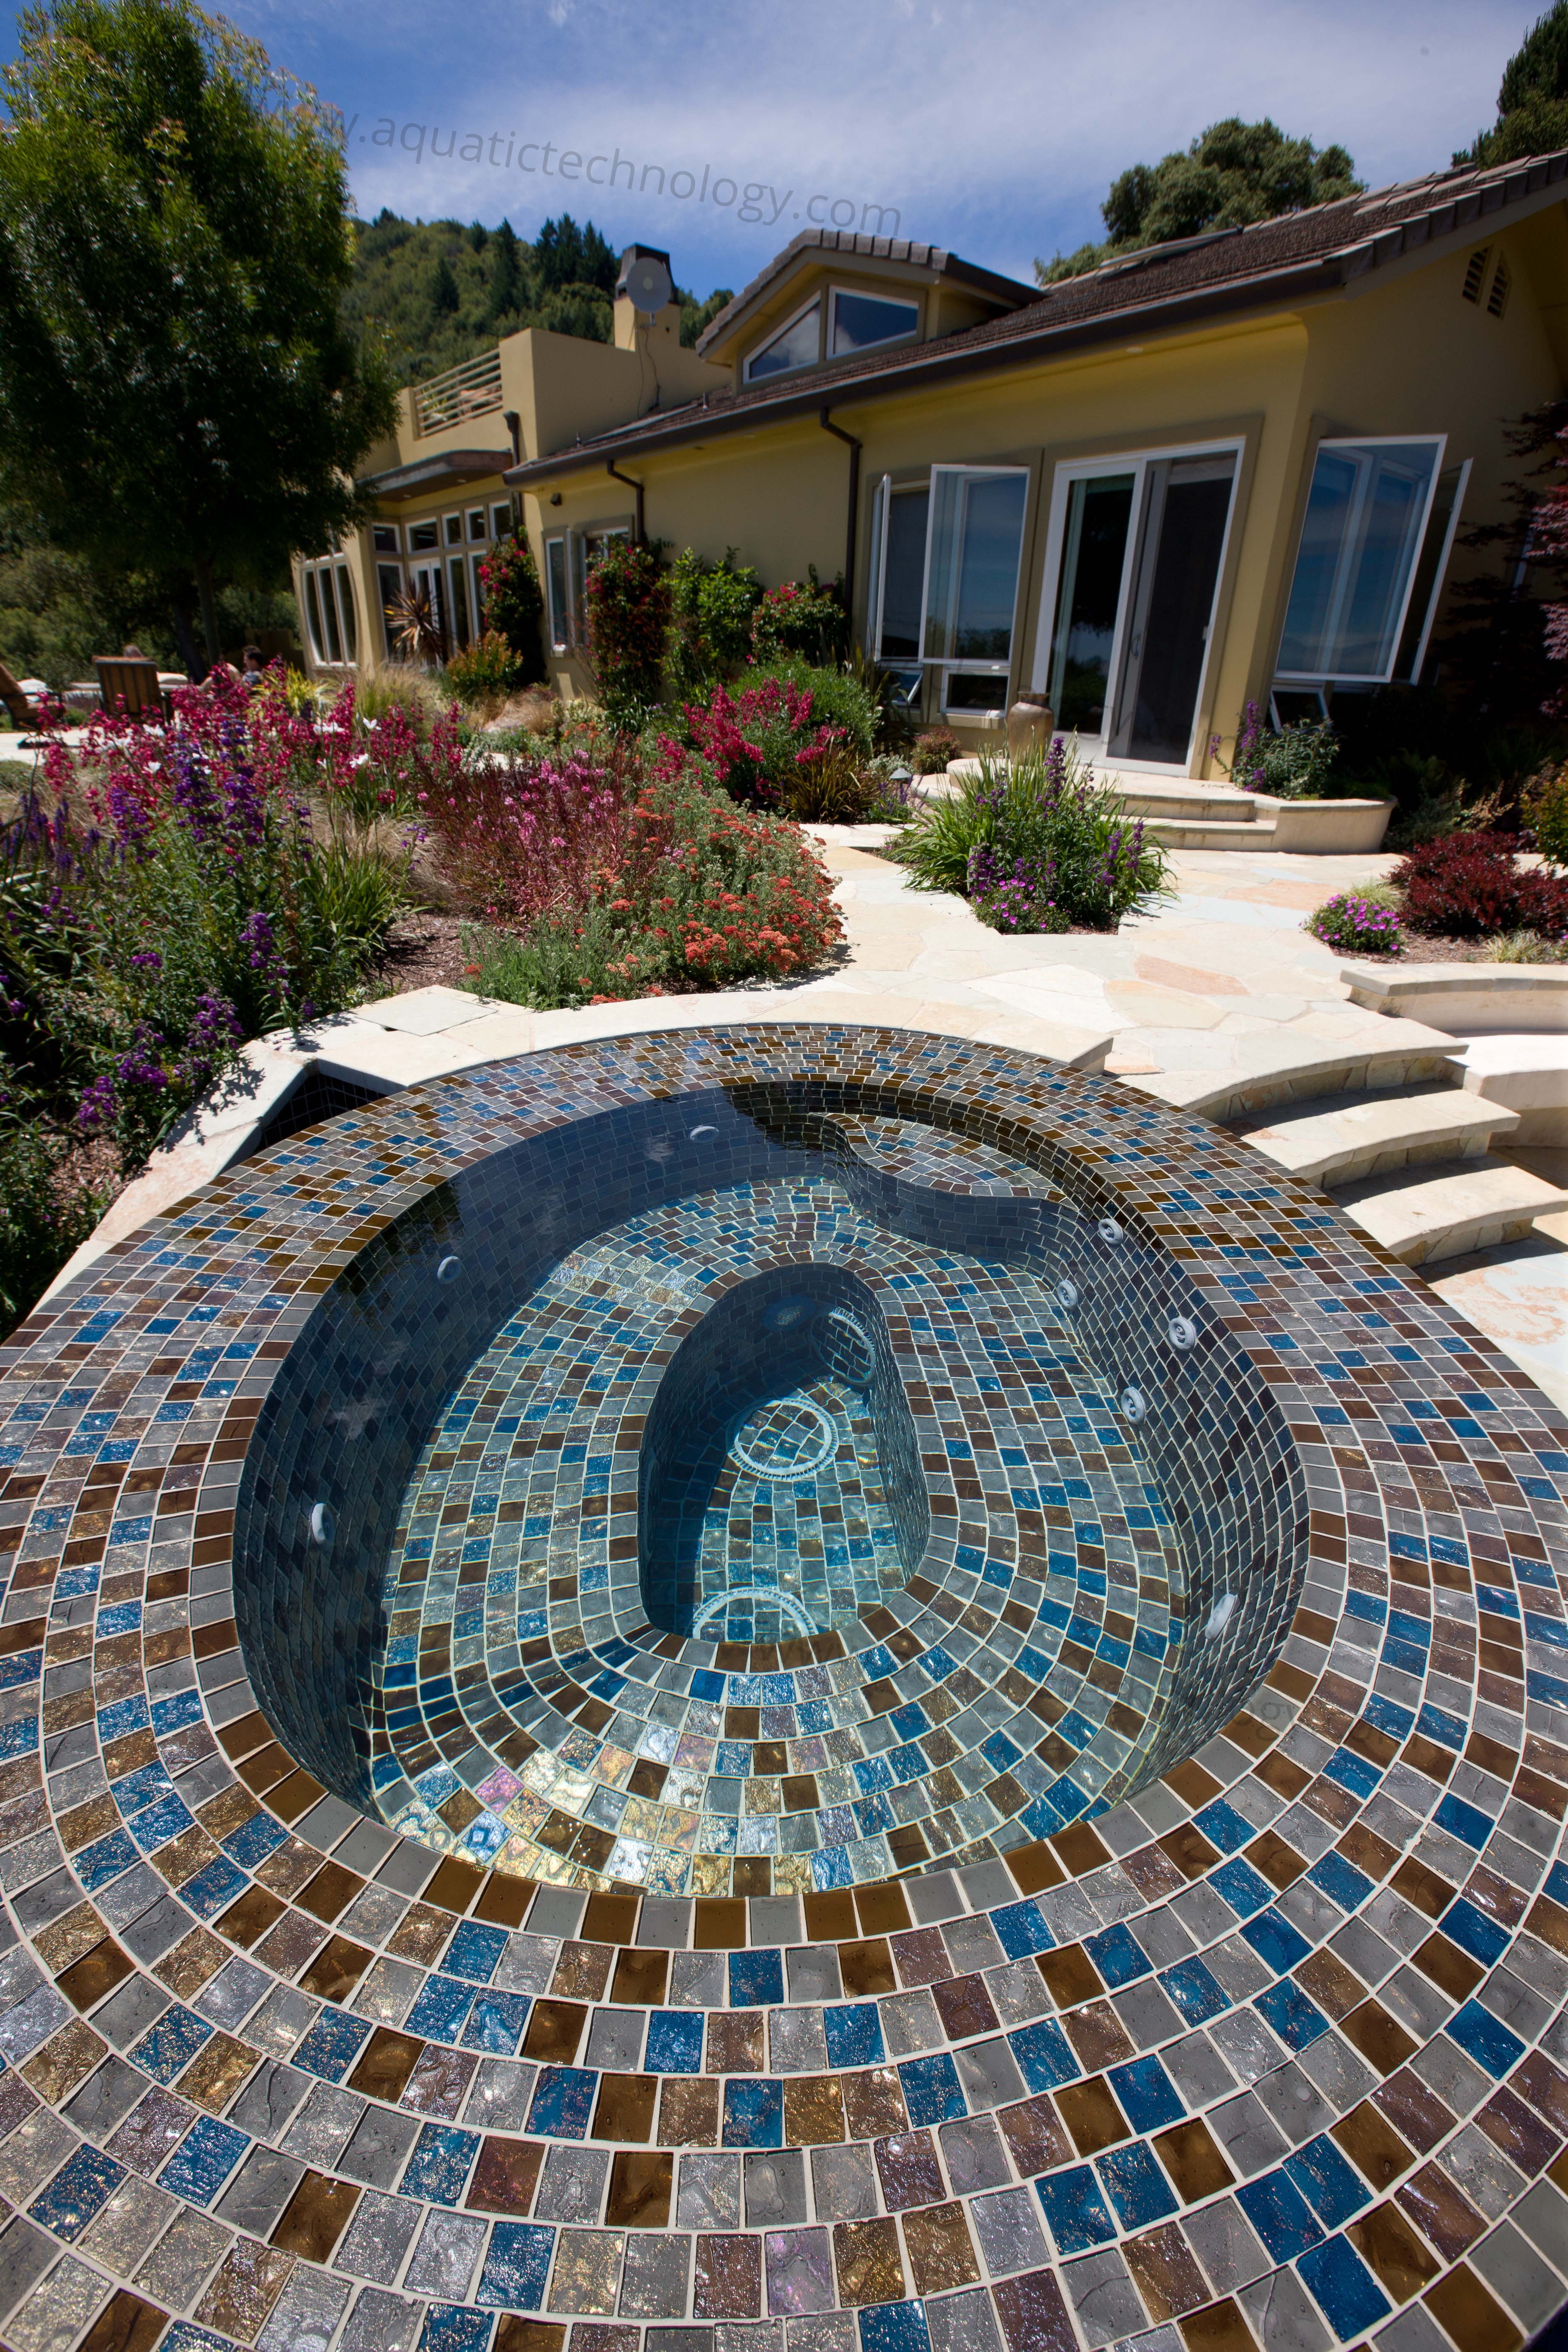 Flooded edge glass tile spa